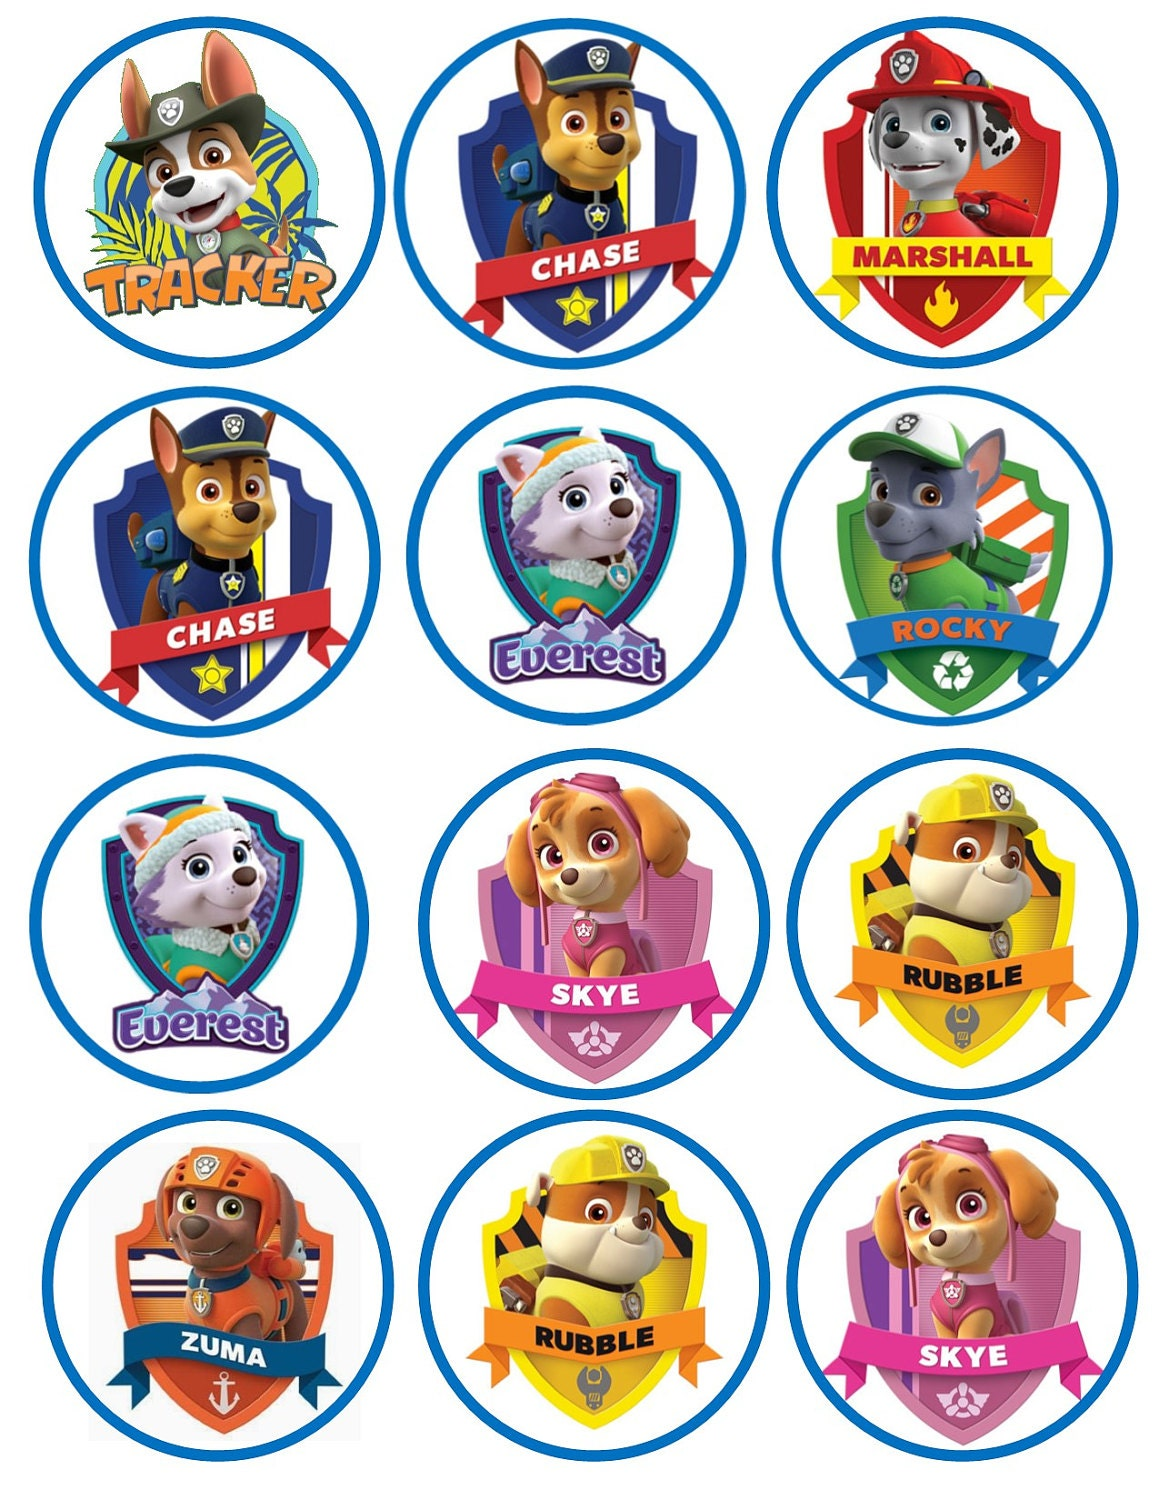 Paw Patrol Edible Cookie/Cupcake toppers